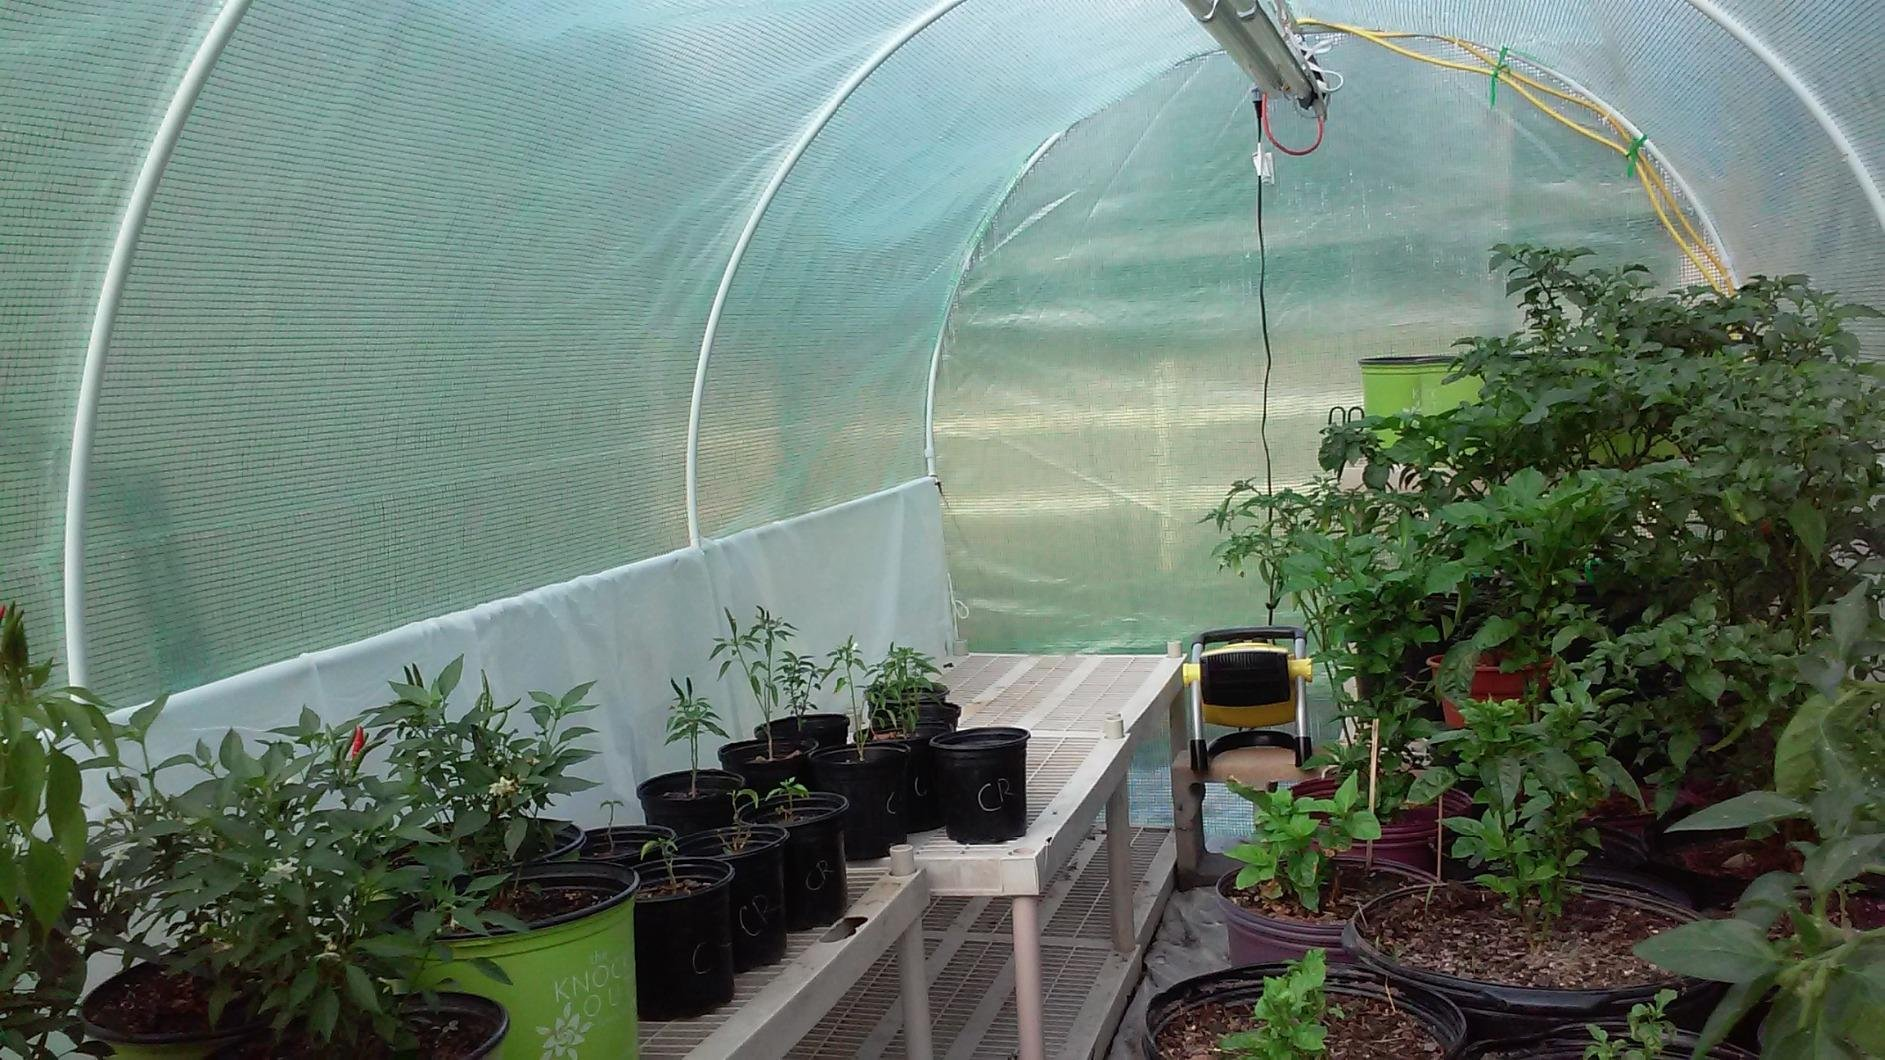 Quictent 16 Stakes KOREA Reinforced PE Cover Greenhouse 15'x7'x7' Arch LARGE Walk in Green Garden Hot House for Plants by Quictent (Image #3)